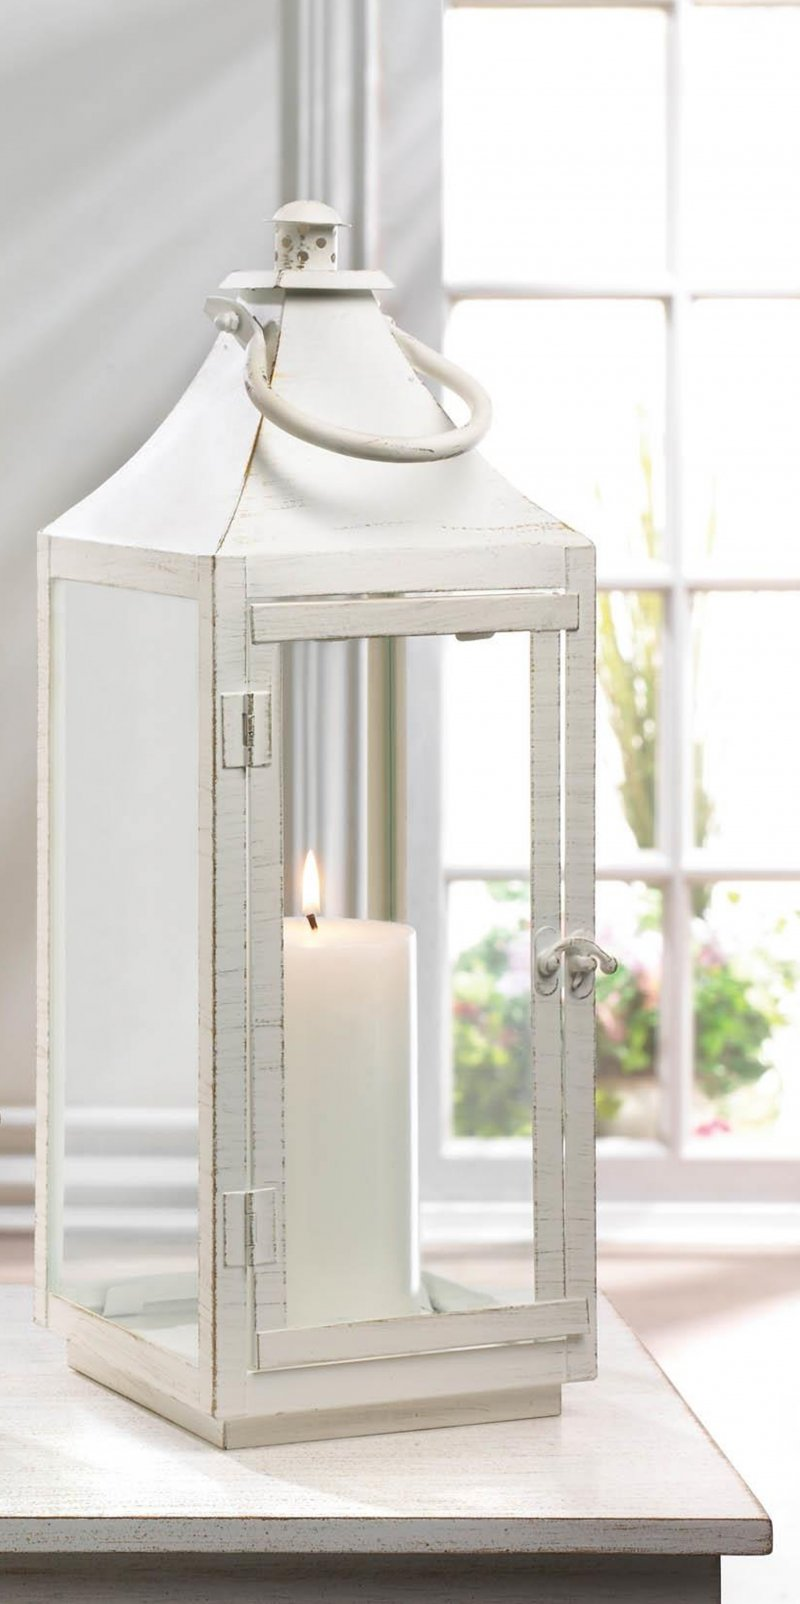 Image 0 of Large Sleek Simply White Traditional Candle Lantern Indoor /Outdoor